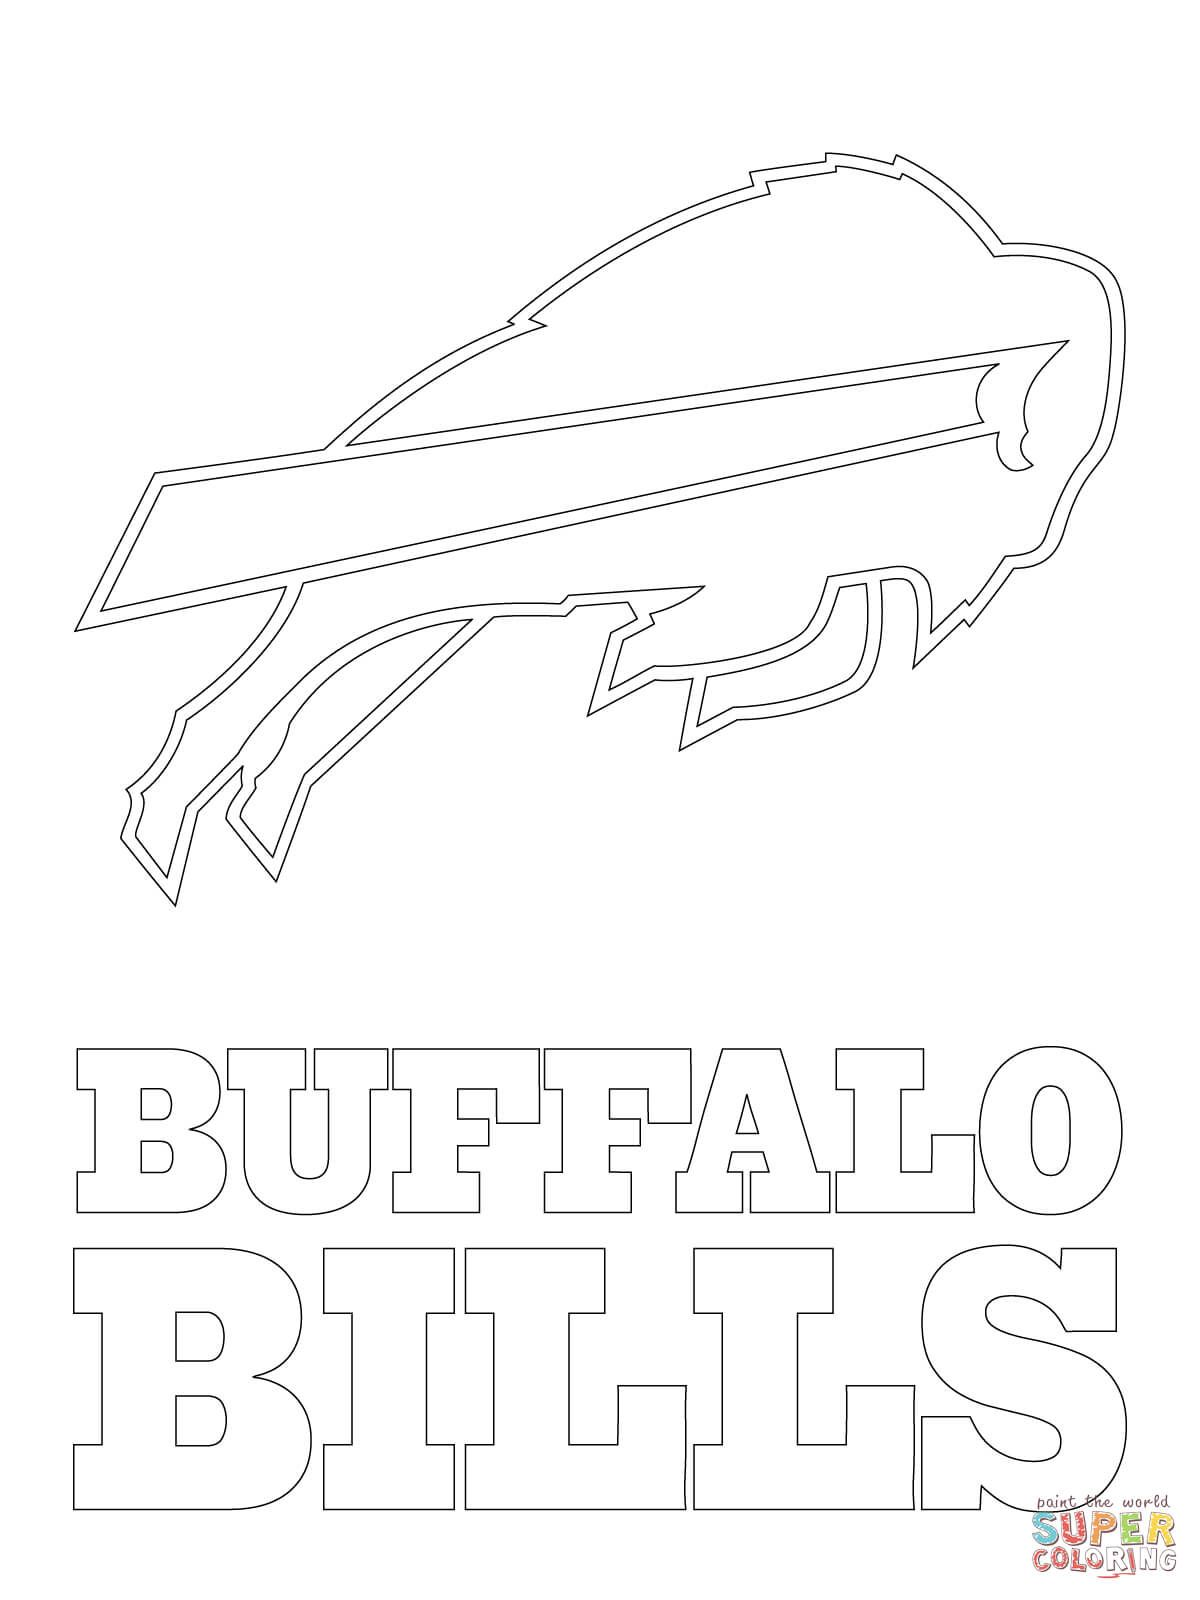 Uncategorized Colts Coloring Pages buffalo bills logo super coloring birthday celebrations football sport pages printable and book to print for free find more online kid